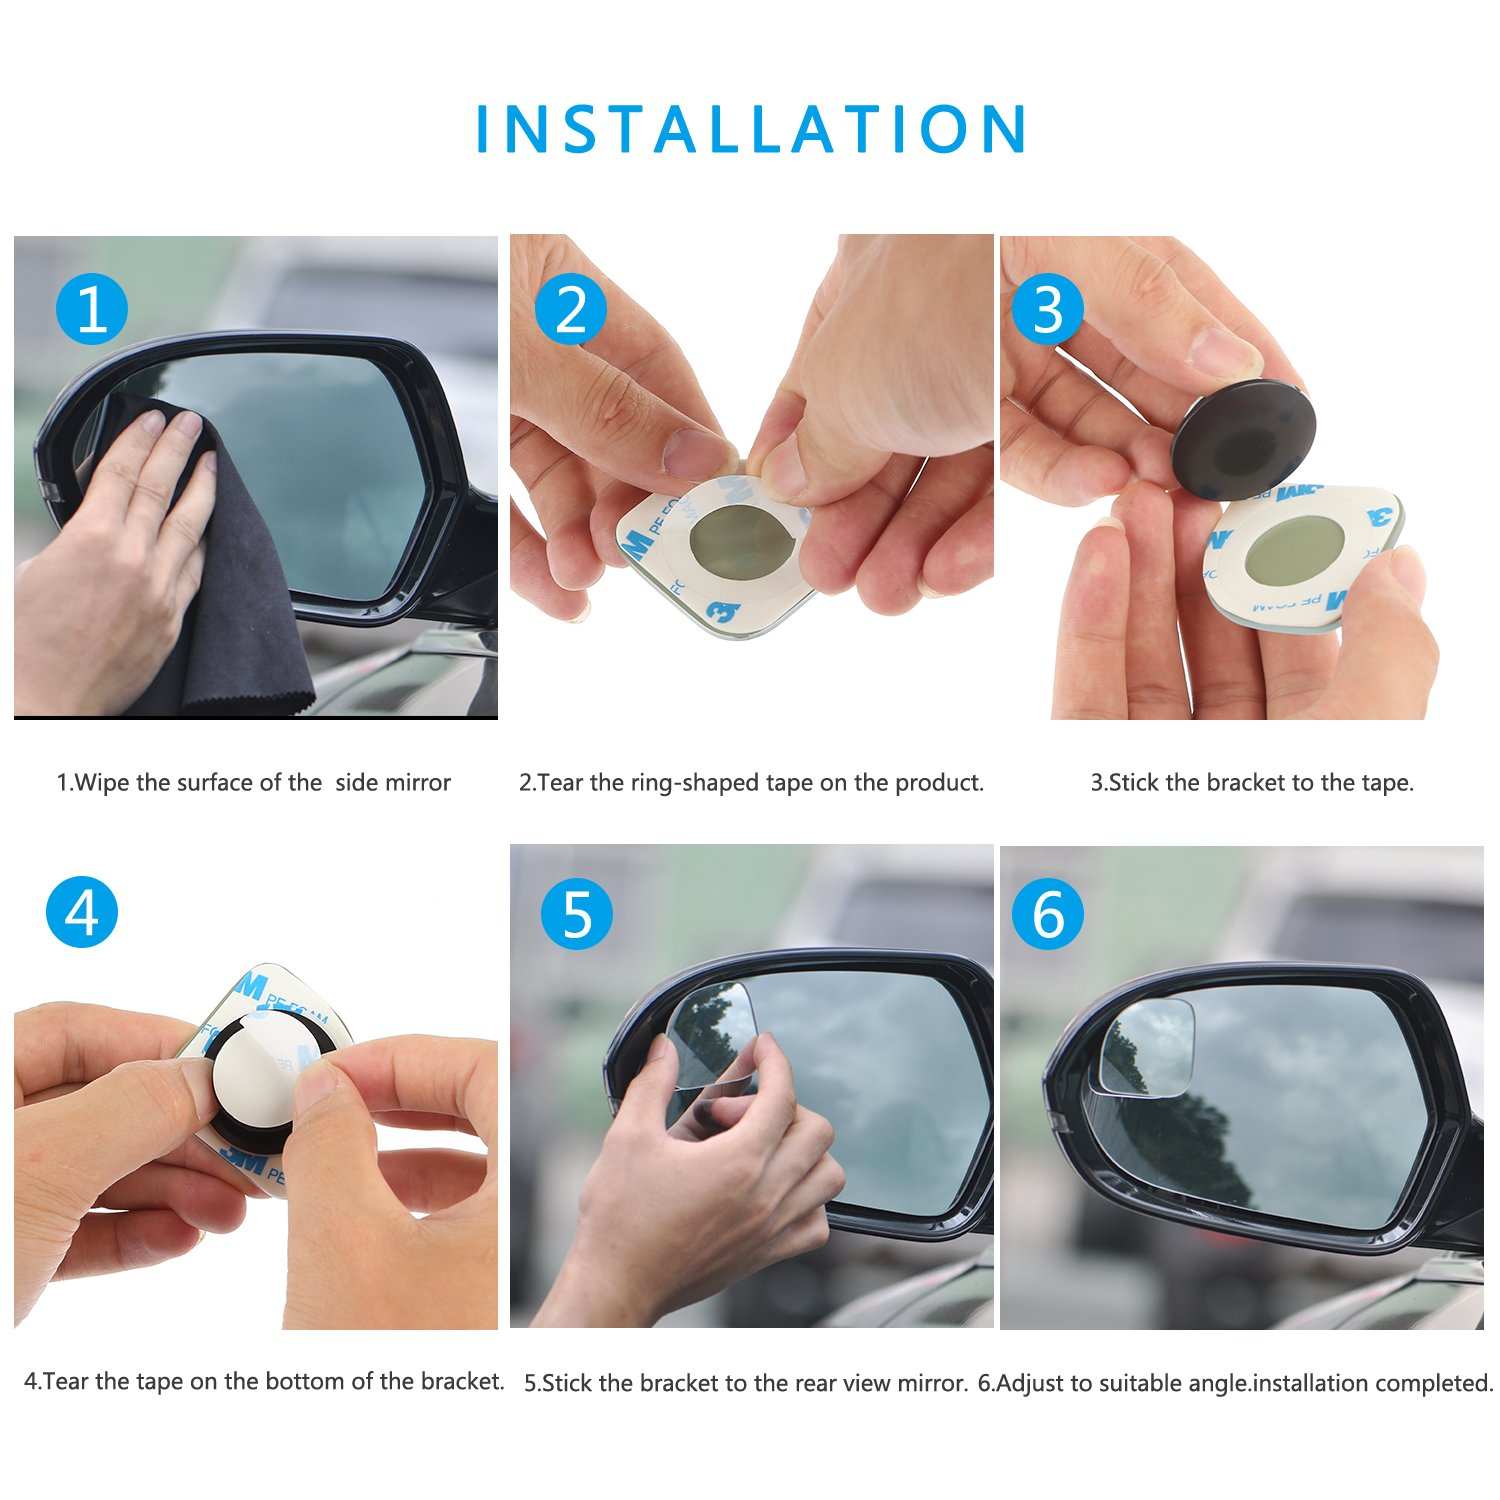 etc 2 Sector Blind Side Mirror Convex Stick-On Adjustable HD Glass Rust Resistant for Cars 2 Sector Blind Side Mirror Convex Stick-On Adjustable HD Glass Rust Resistant for Cars SASUM Pack of 2 Blind Spots Mirror SUVs RVs